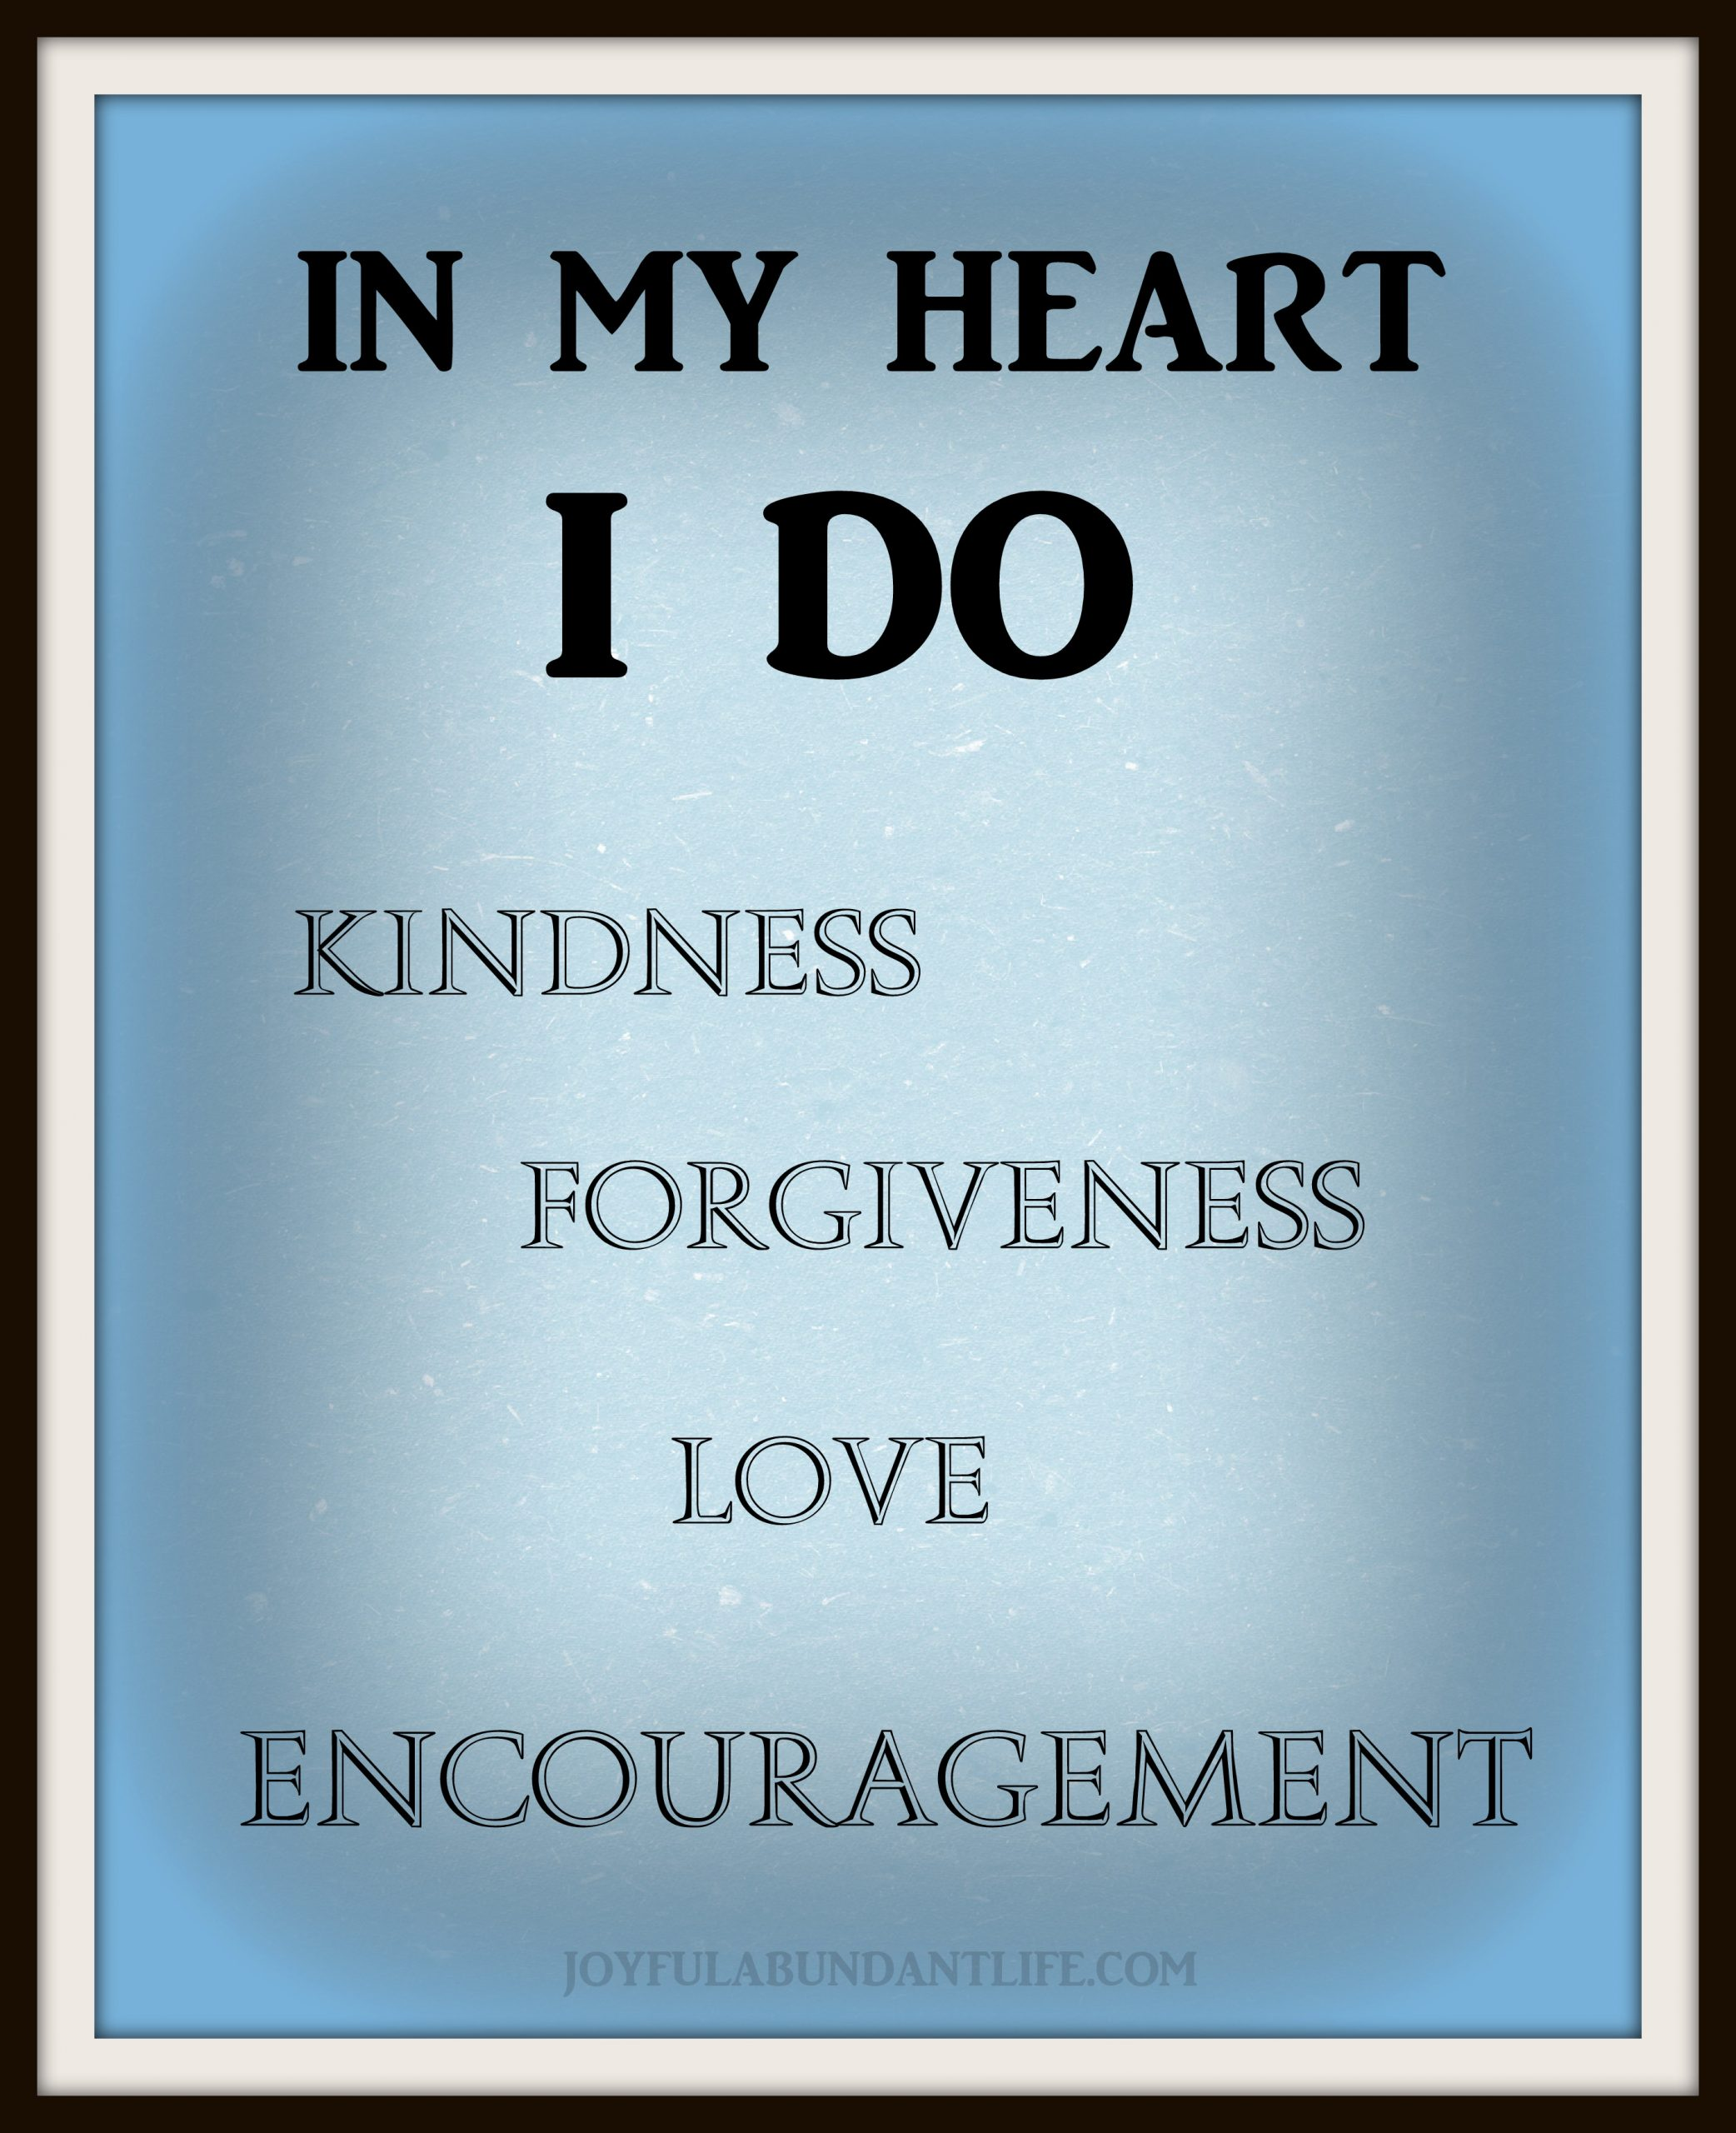 Do Kindness, Forgiveness, Love, and Encouragement